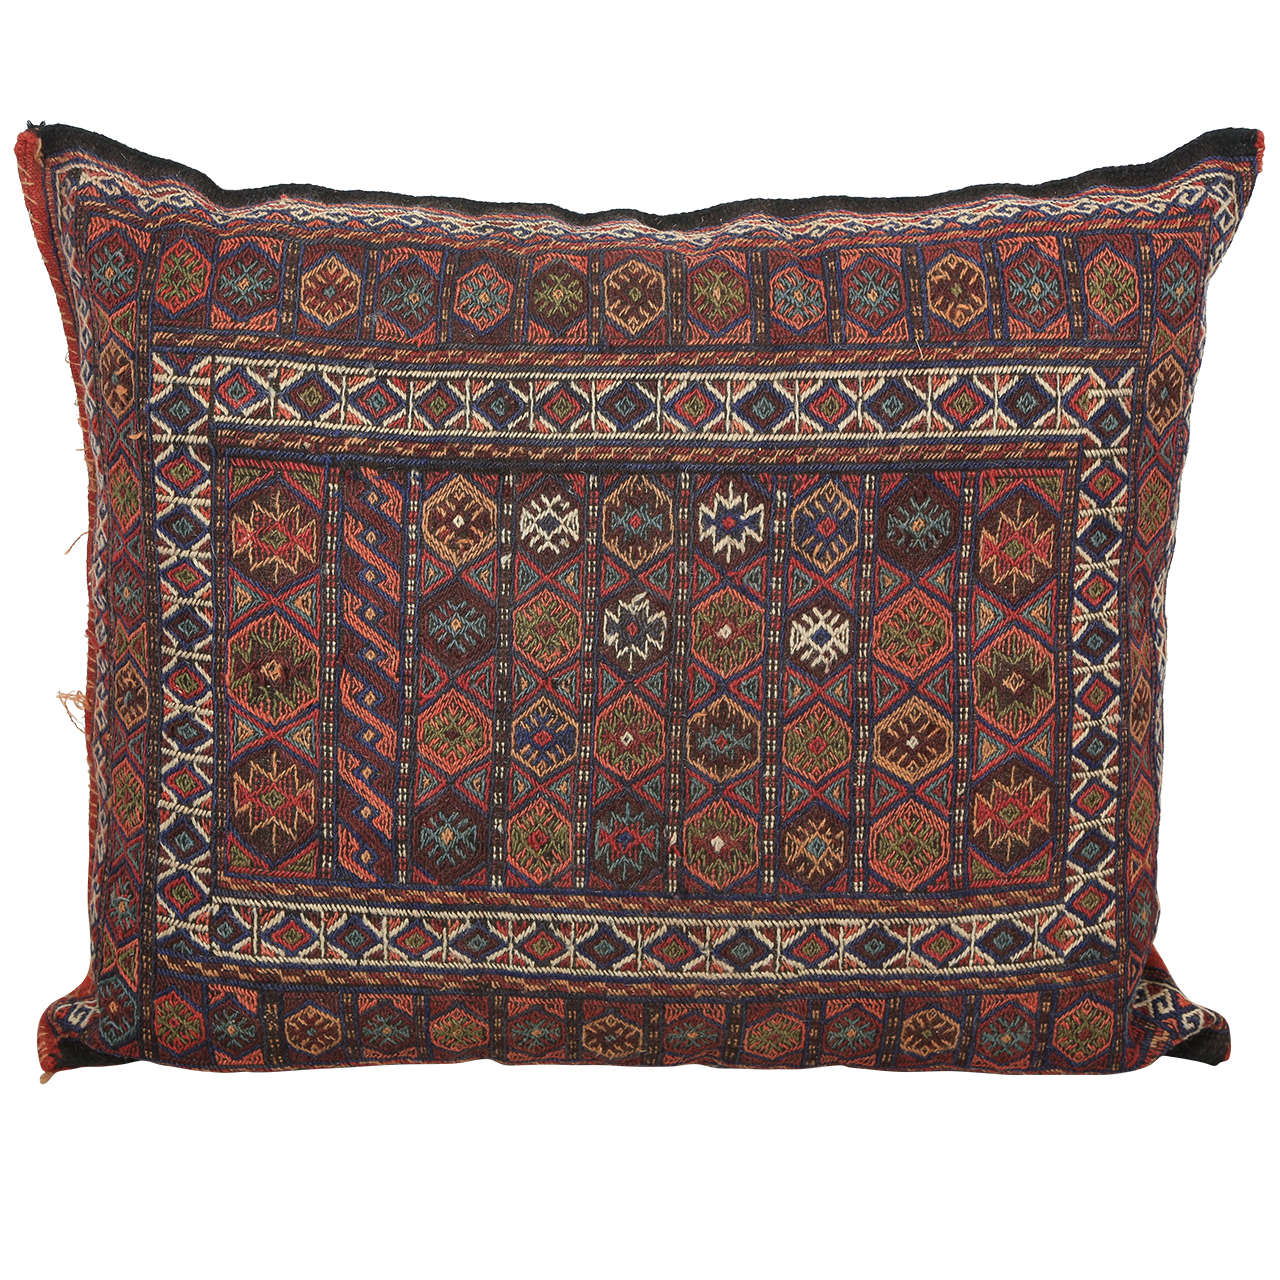 Giant Moroccan Floor Pillows : Moroccan Tribal Kilim Floor Pillow at 1stdibs